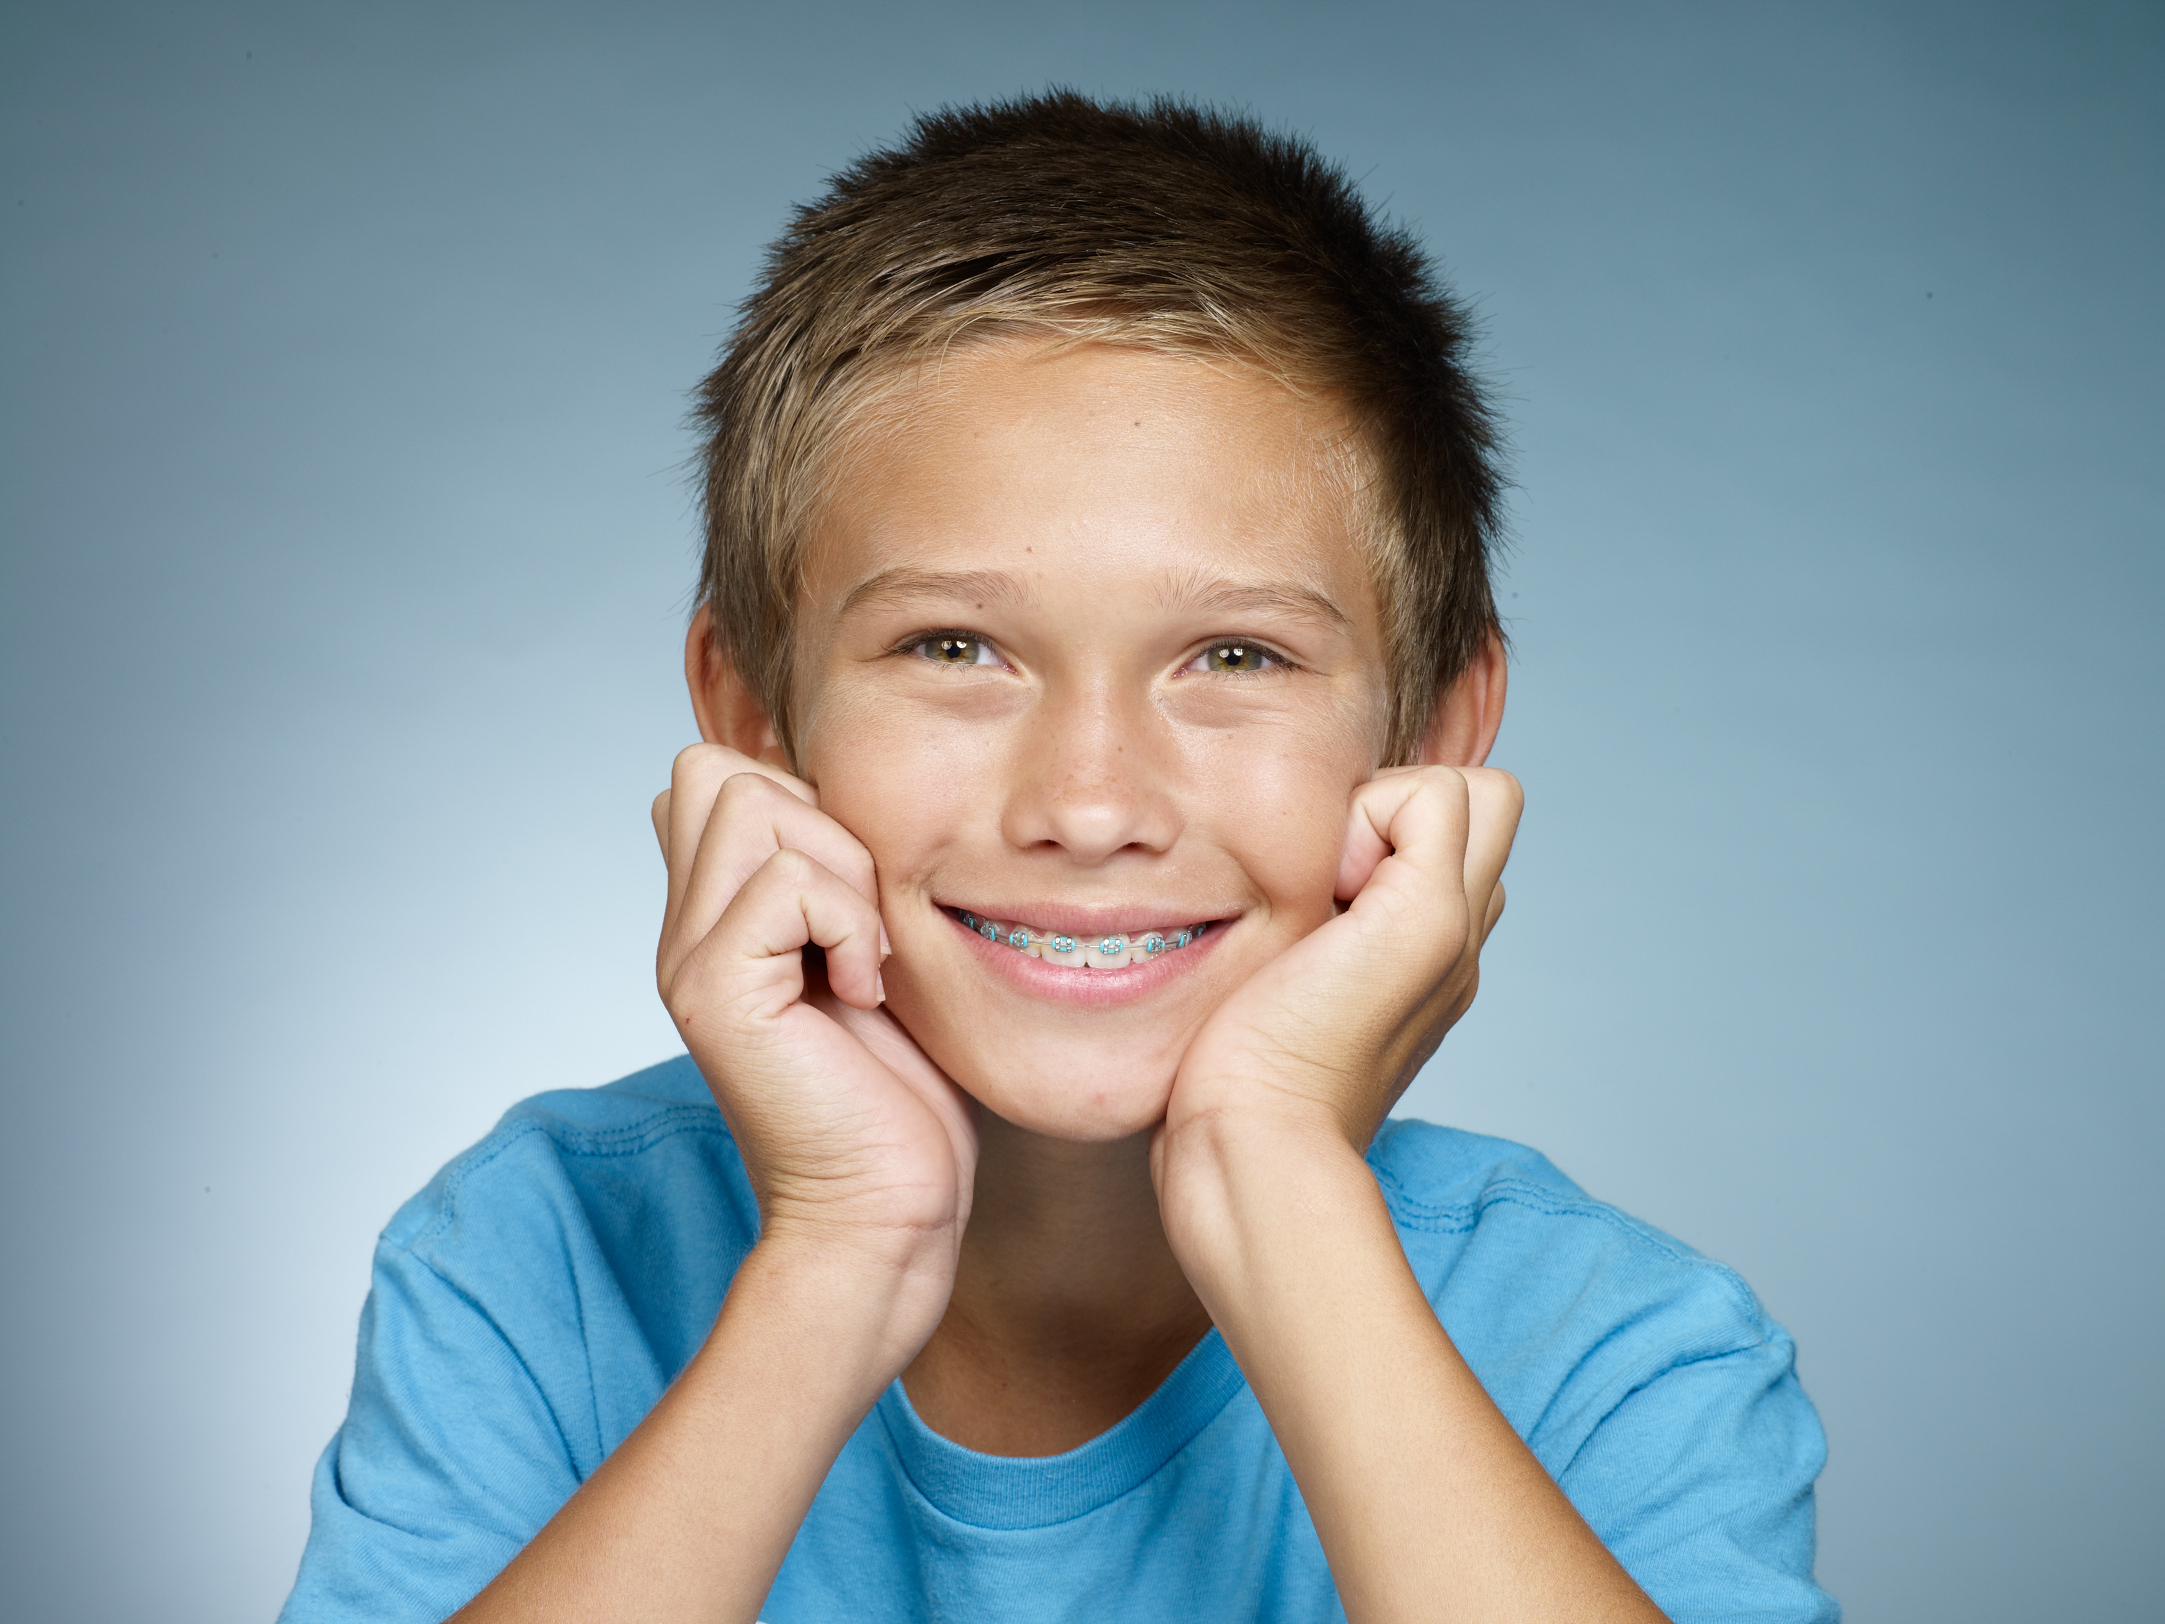 Colorado Springs Orthodontics Colorado Springs Orthodontist Smiling Springs Orthodontics